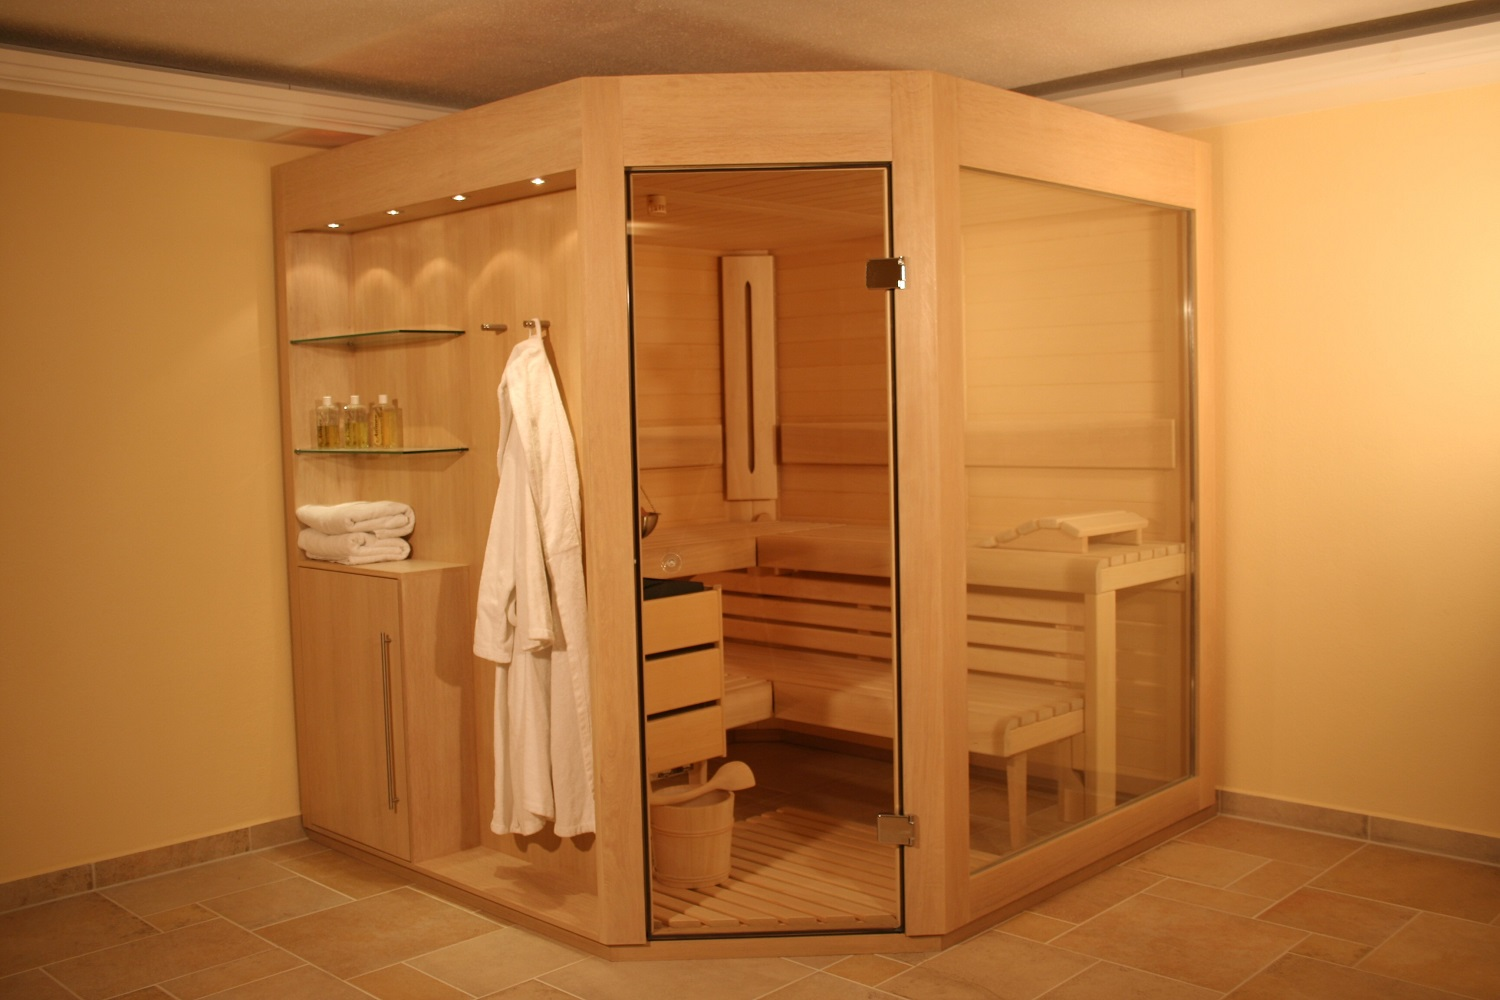 sauna mit eckeinstieg grandl sauna und innenausbau gmbh. Black Bedroom Furniture Sets. Home Design Ideas